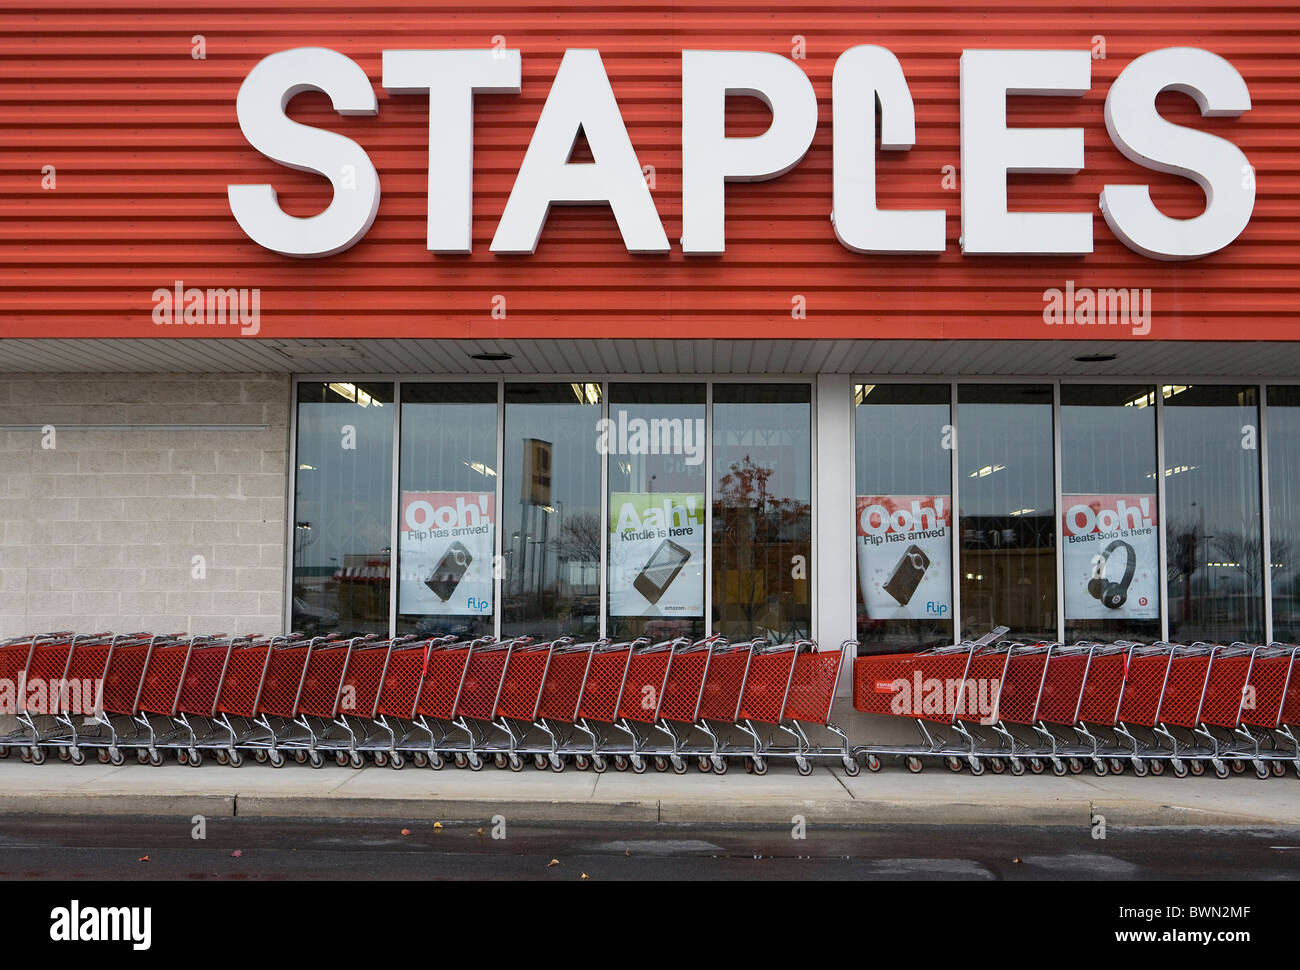 A Staples office supply superstore.  - Stock Image